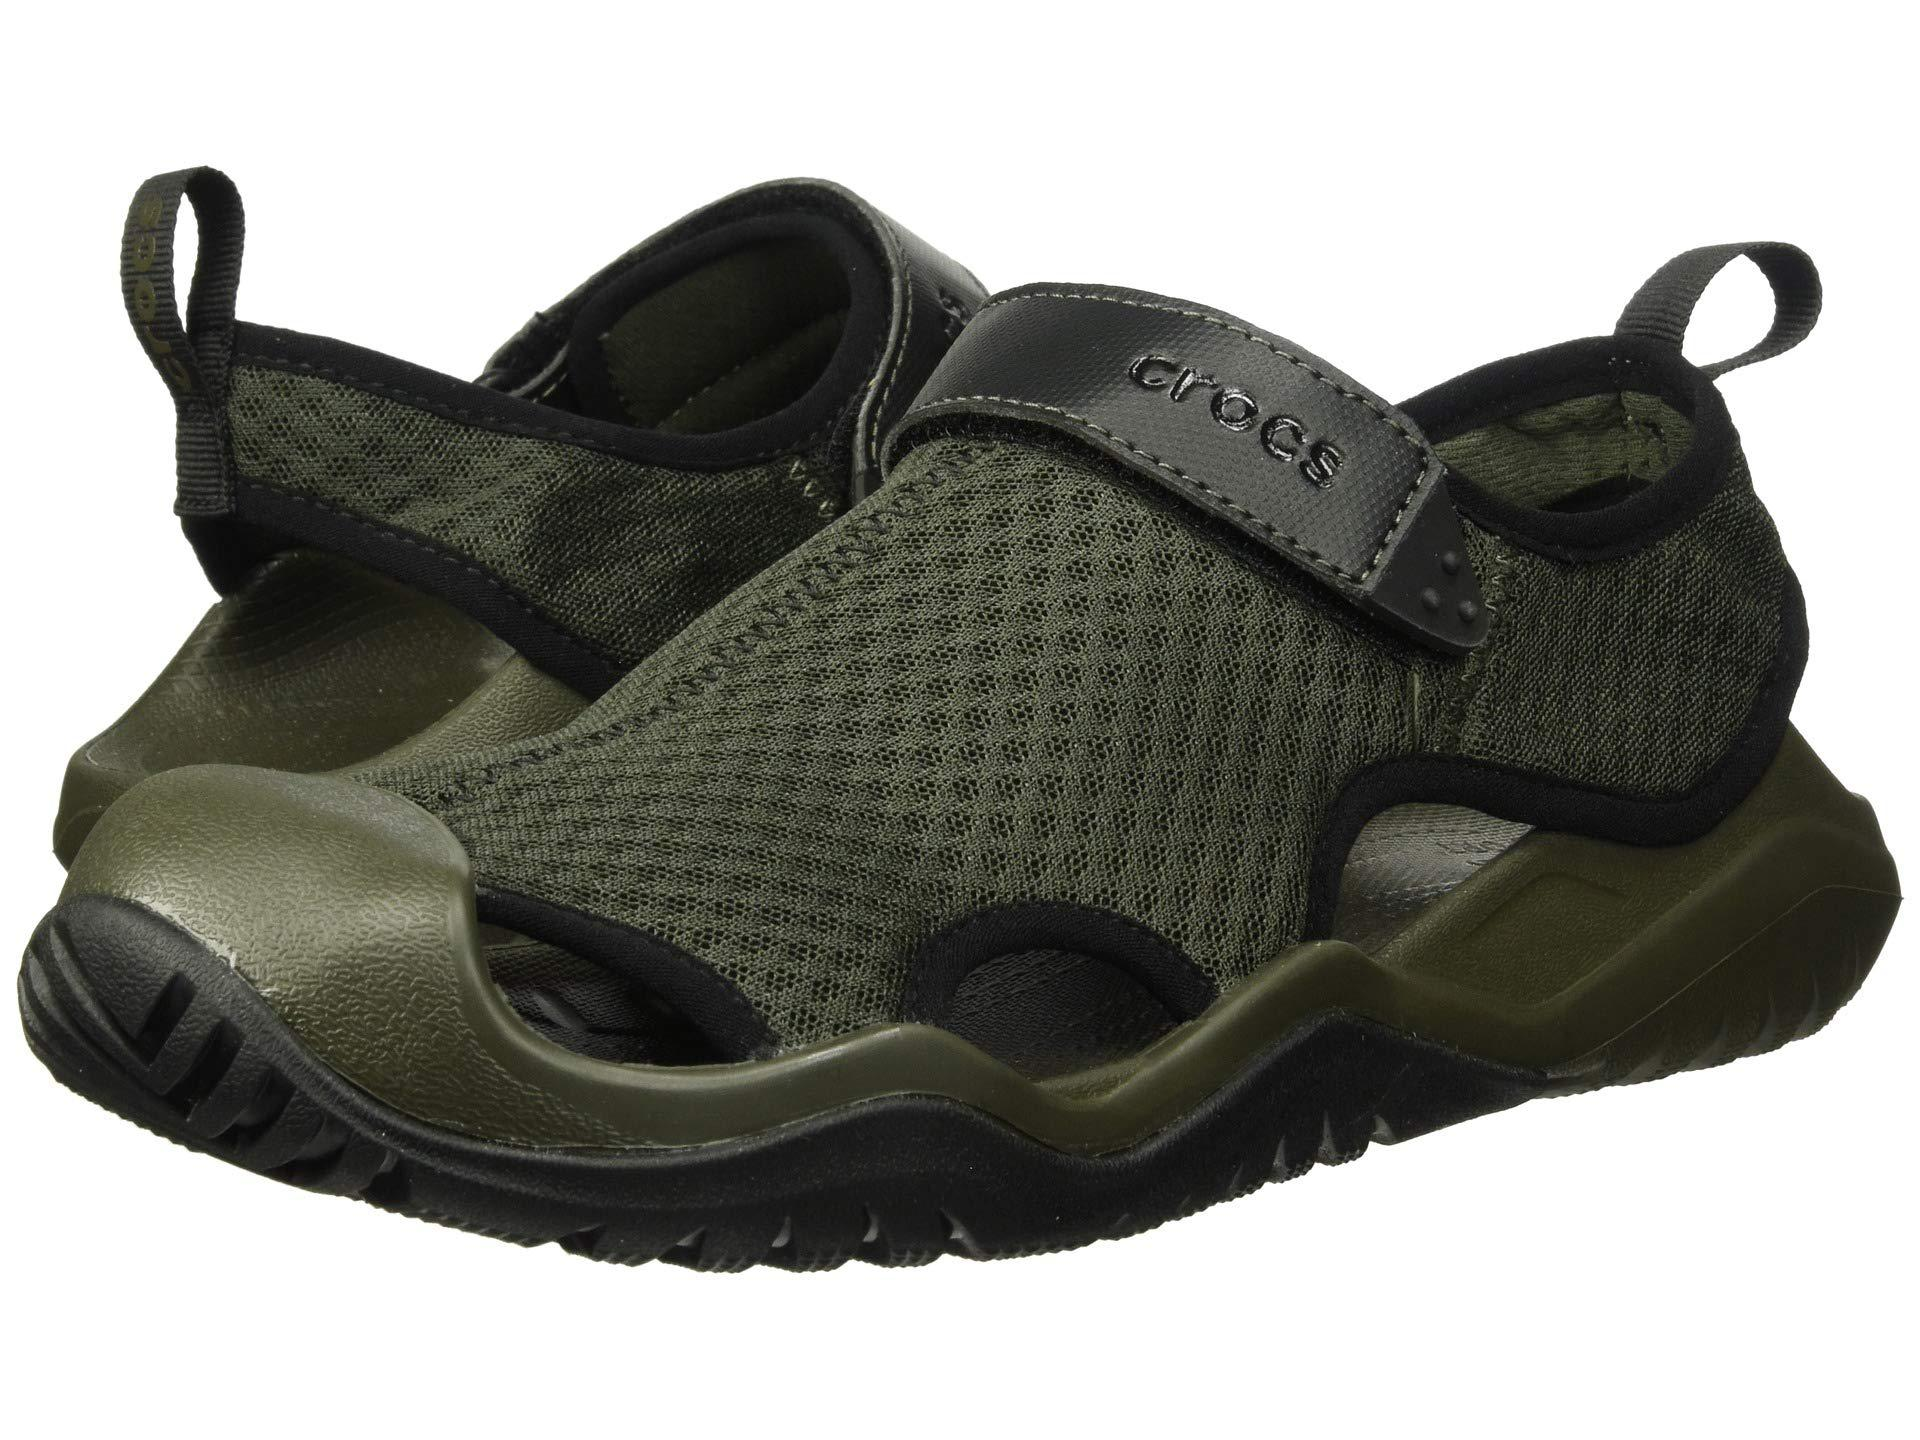 ee03f673bea6 Lyst - Crocs™ Swiftwater Mesh Deck Sandal in Green for Men - Save 5%